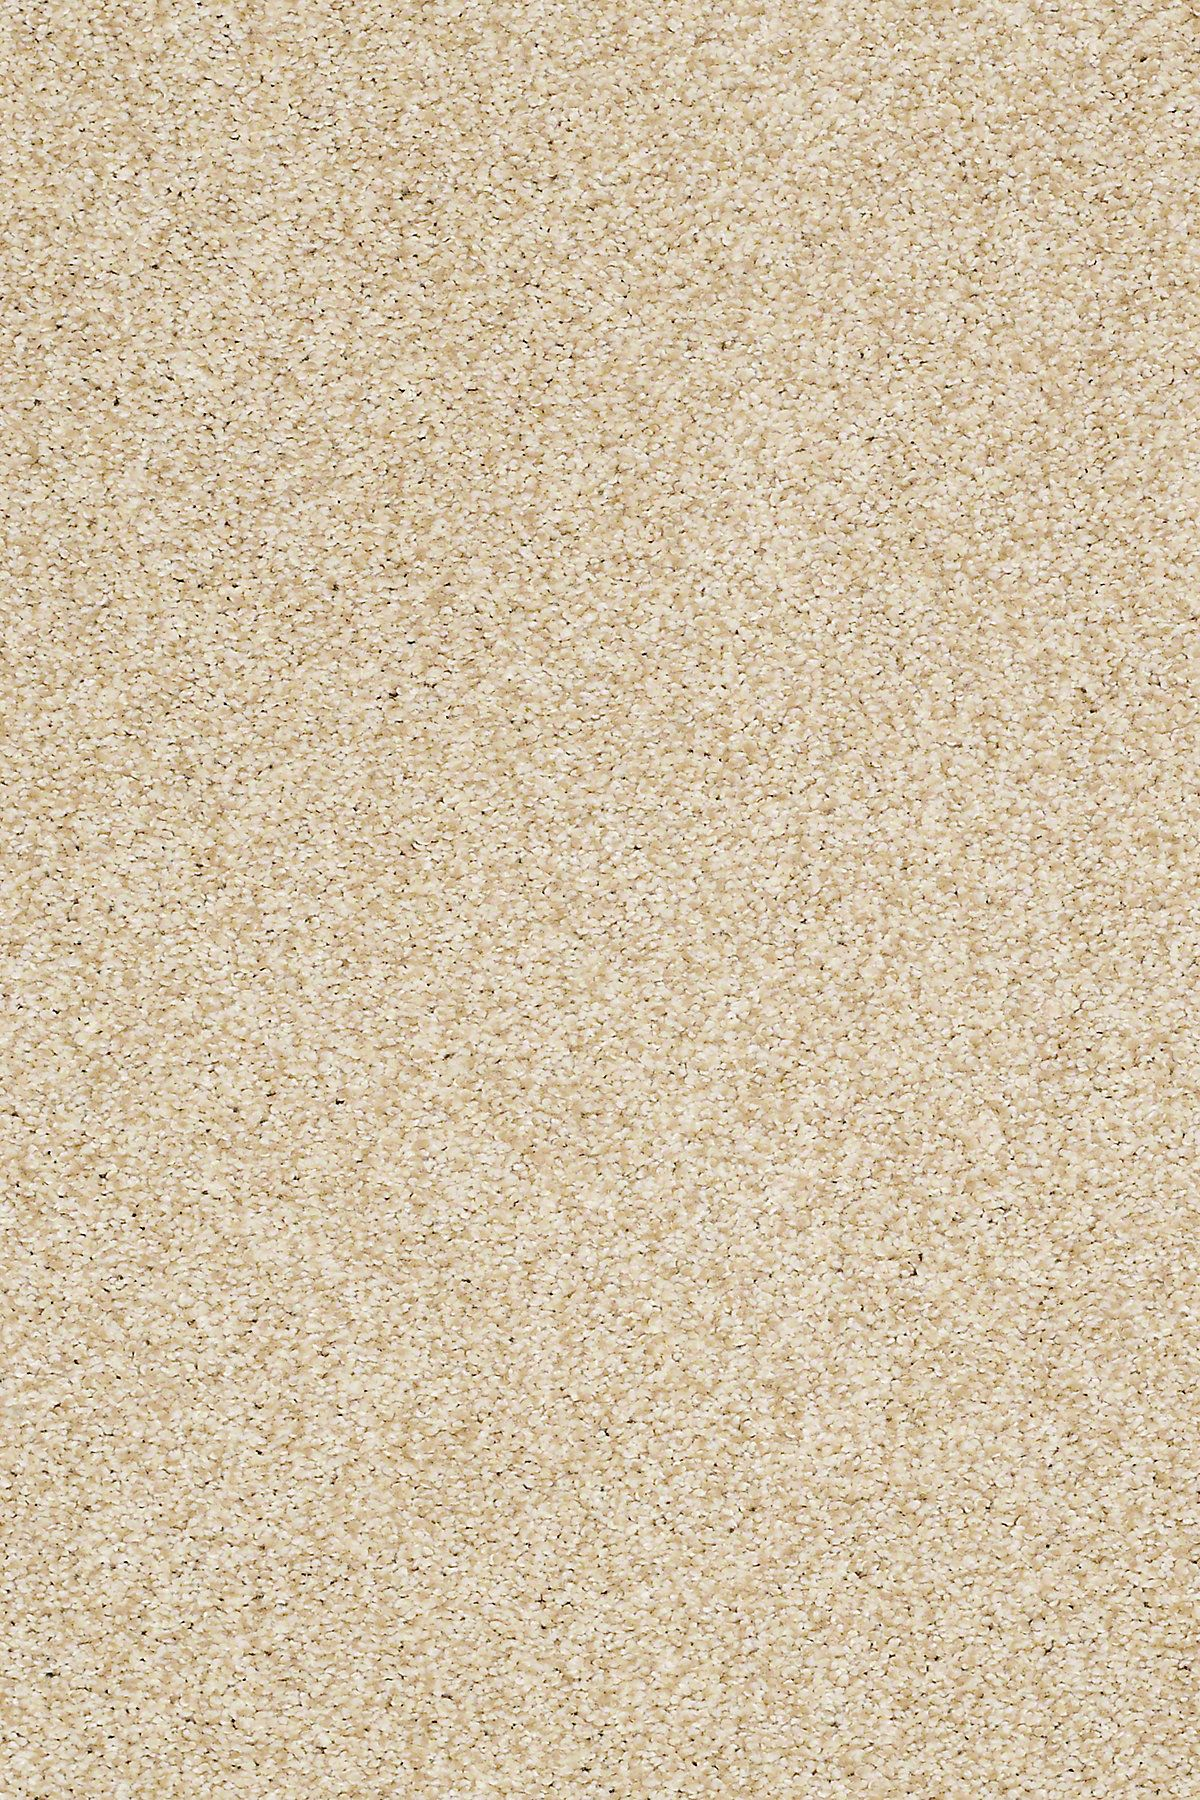 Milford Sound Ccs33 Churro Carpet Carpeting Berber Texture More In 2020 Carpet Samples Carpet Flooring Buying Carpet